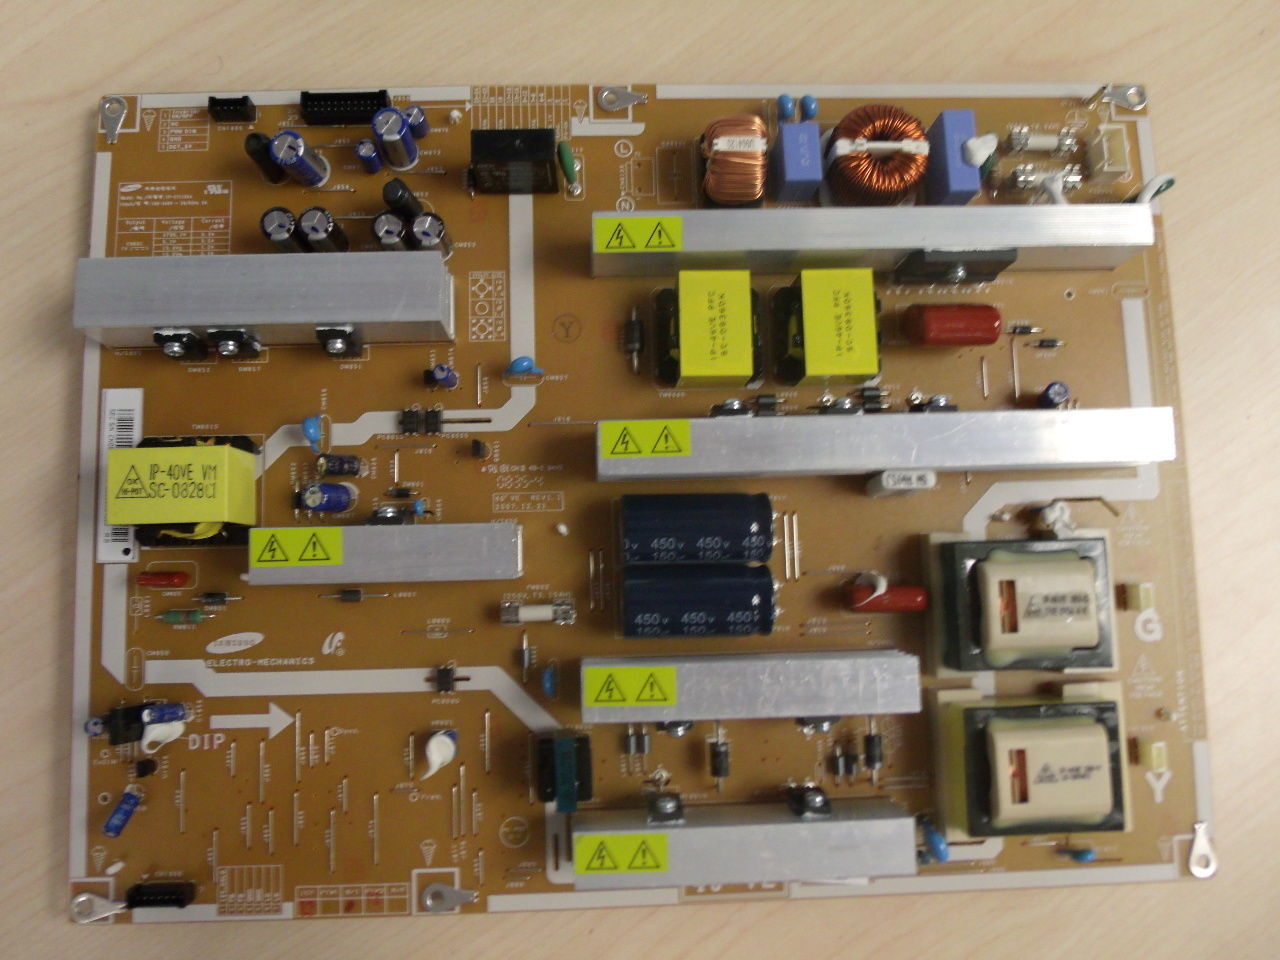 "Samsung 46"" LN46A500 LN46C530 BN44-00202A Power Supply Board Uni"